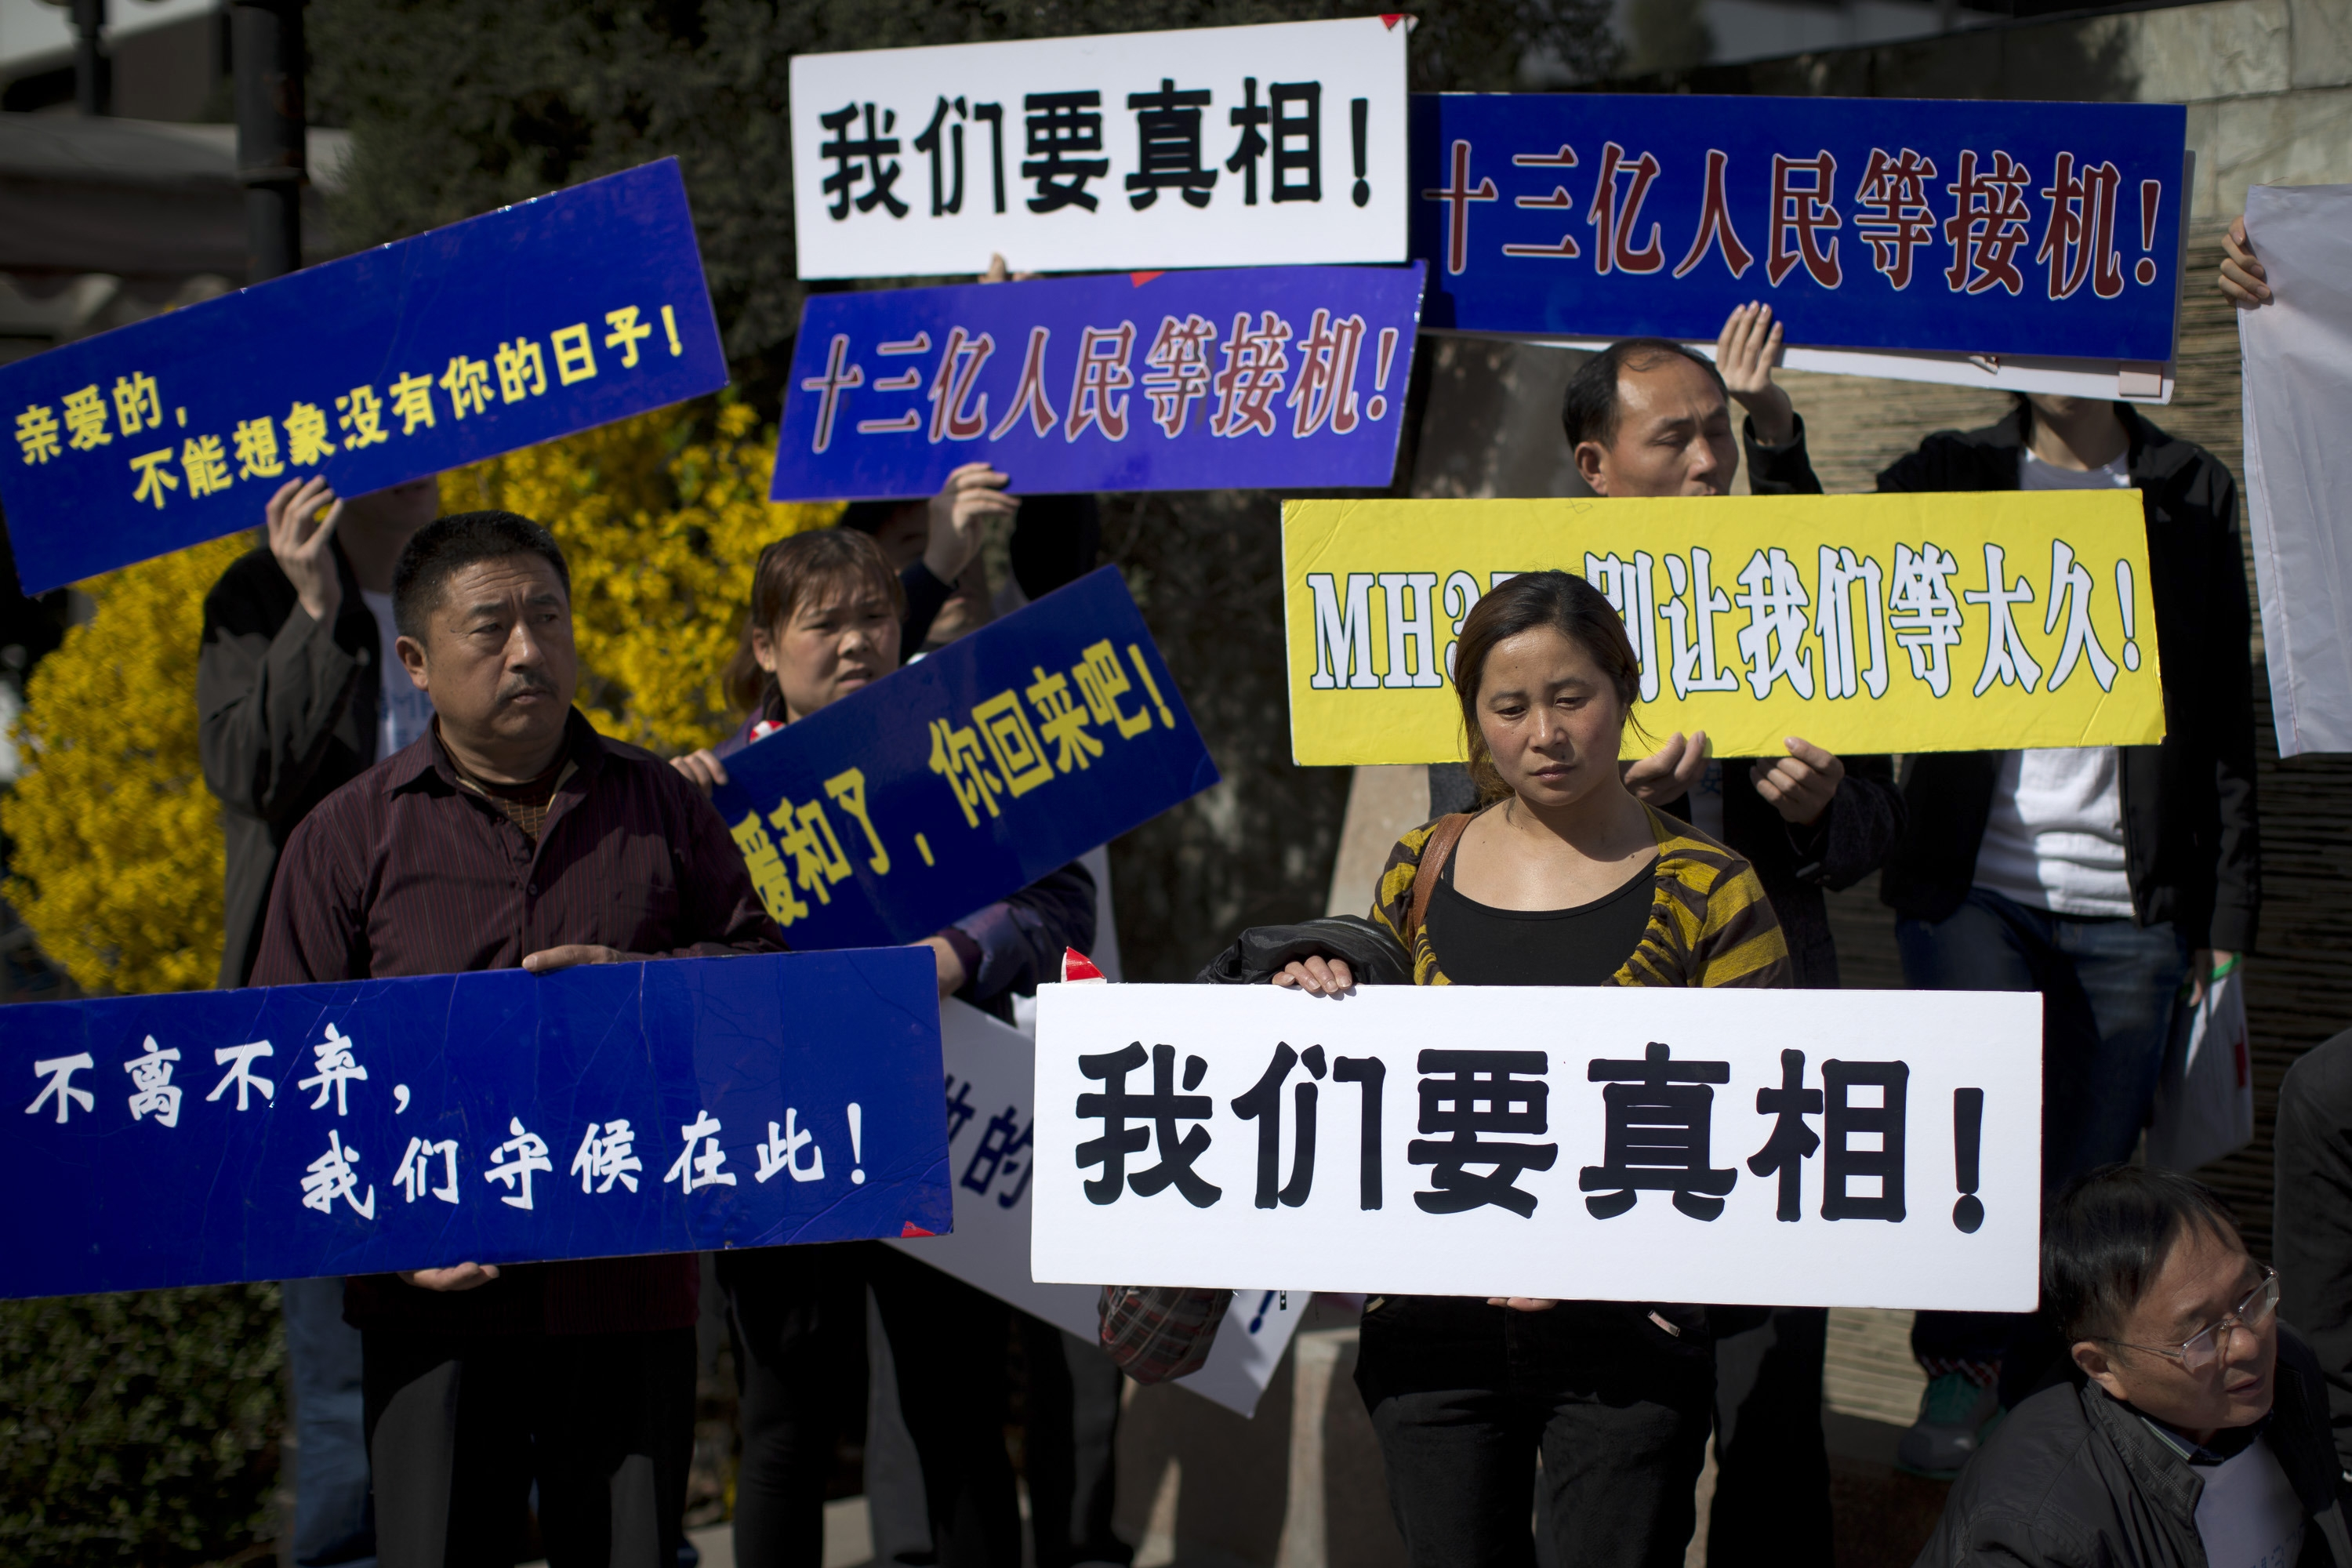 Relatives of Chinese passengers on Malaysia Airlines Flight 370 stage a protest against the airlines and the Malaysian government at a hotel in Beijing Saturday.